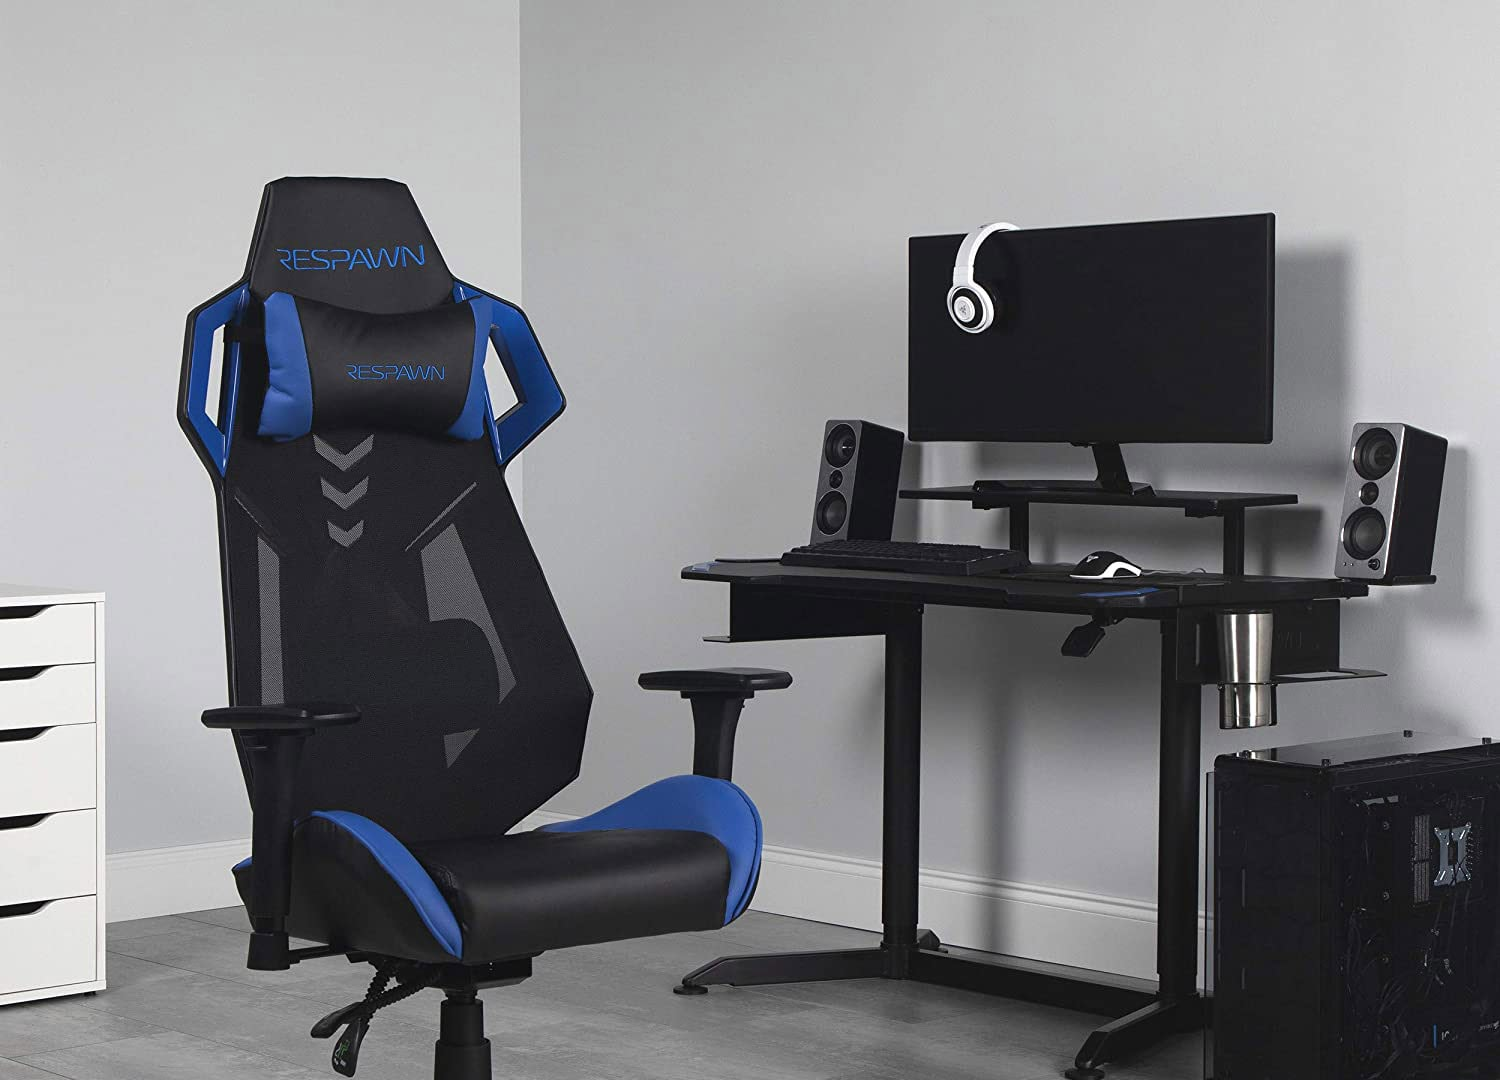 RESPAWN-200 Racing Style Gaming Chair